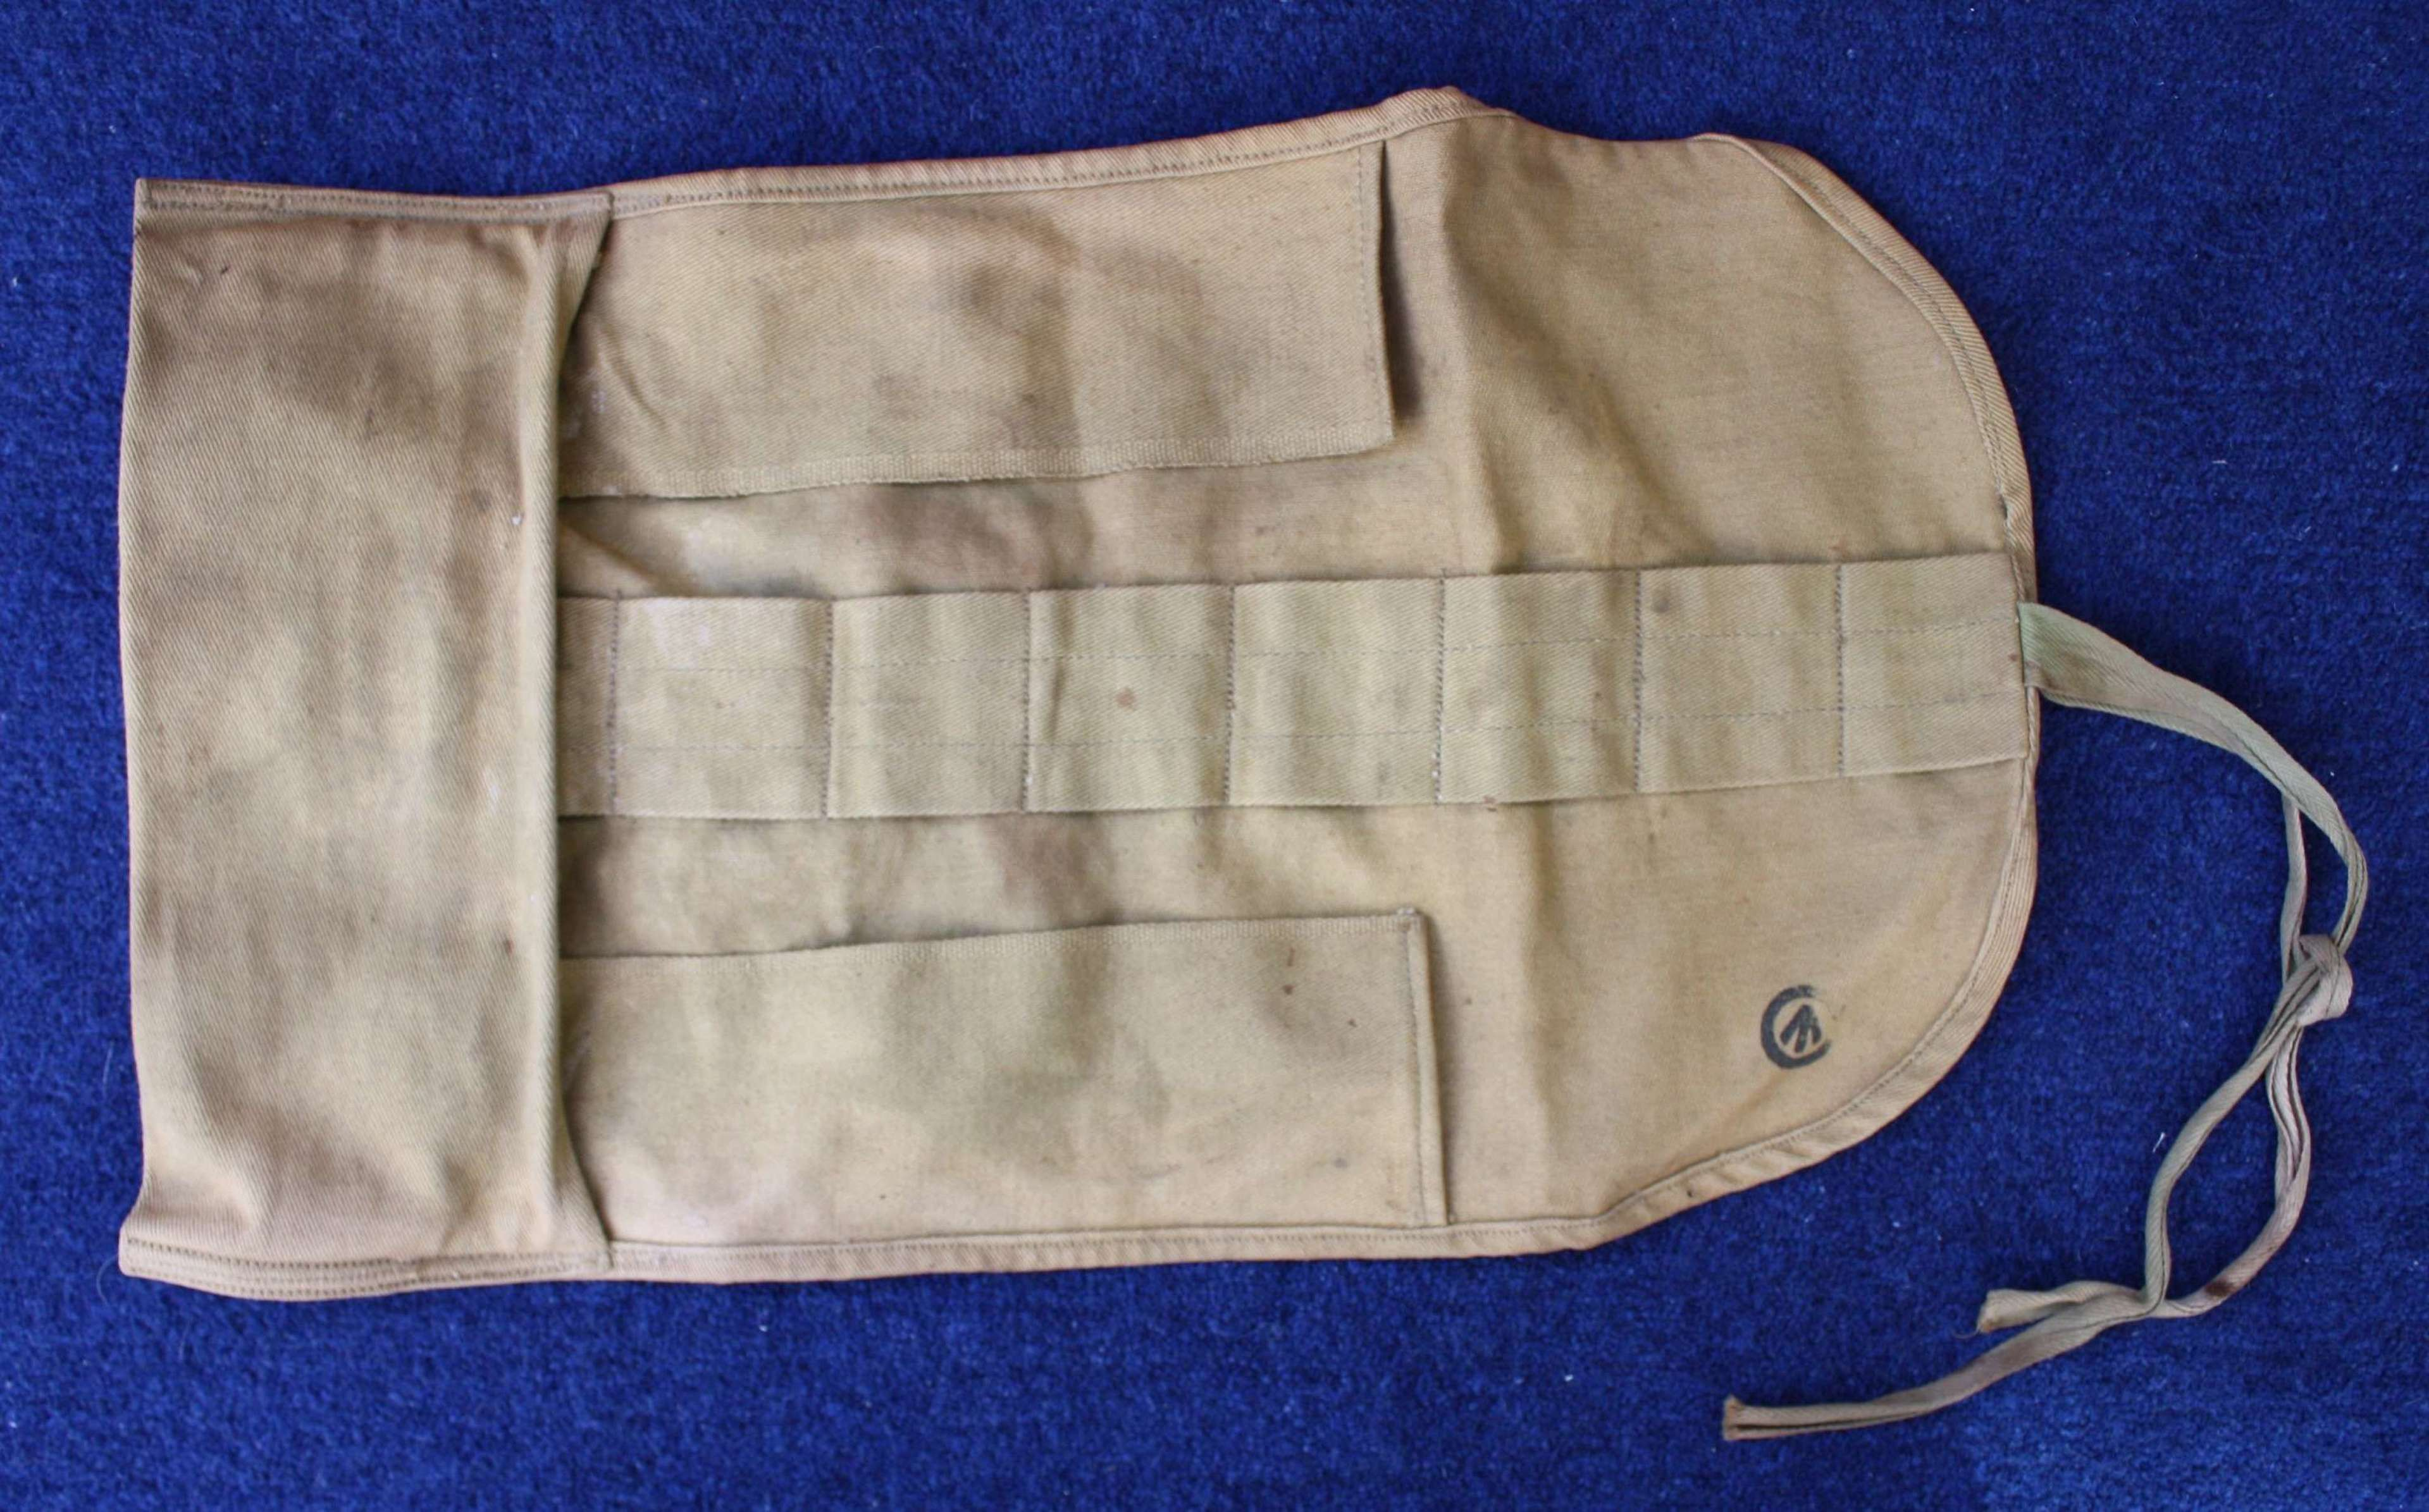 WW1 Canadian Made Khaki Cotton Holdall for basics & Hussif sewing kit